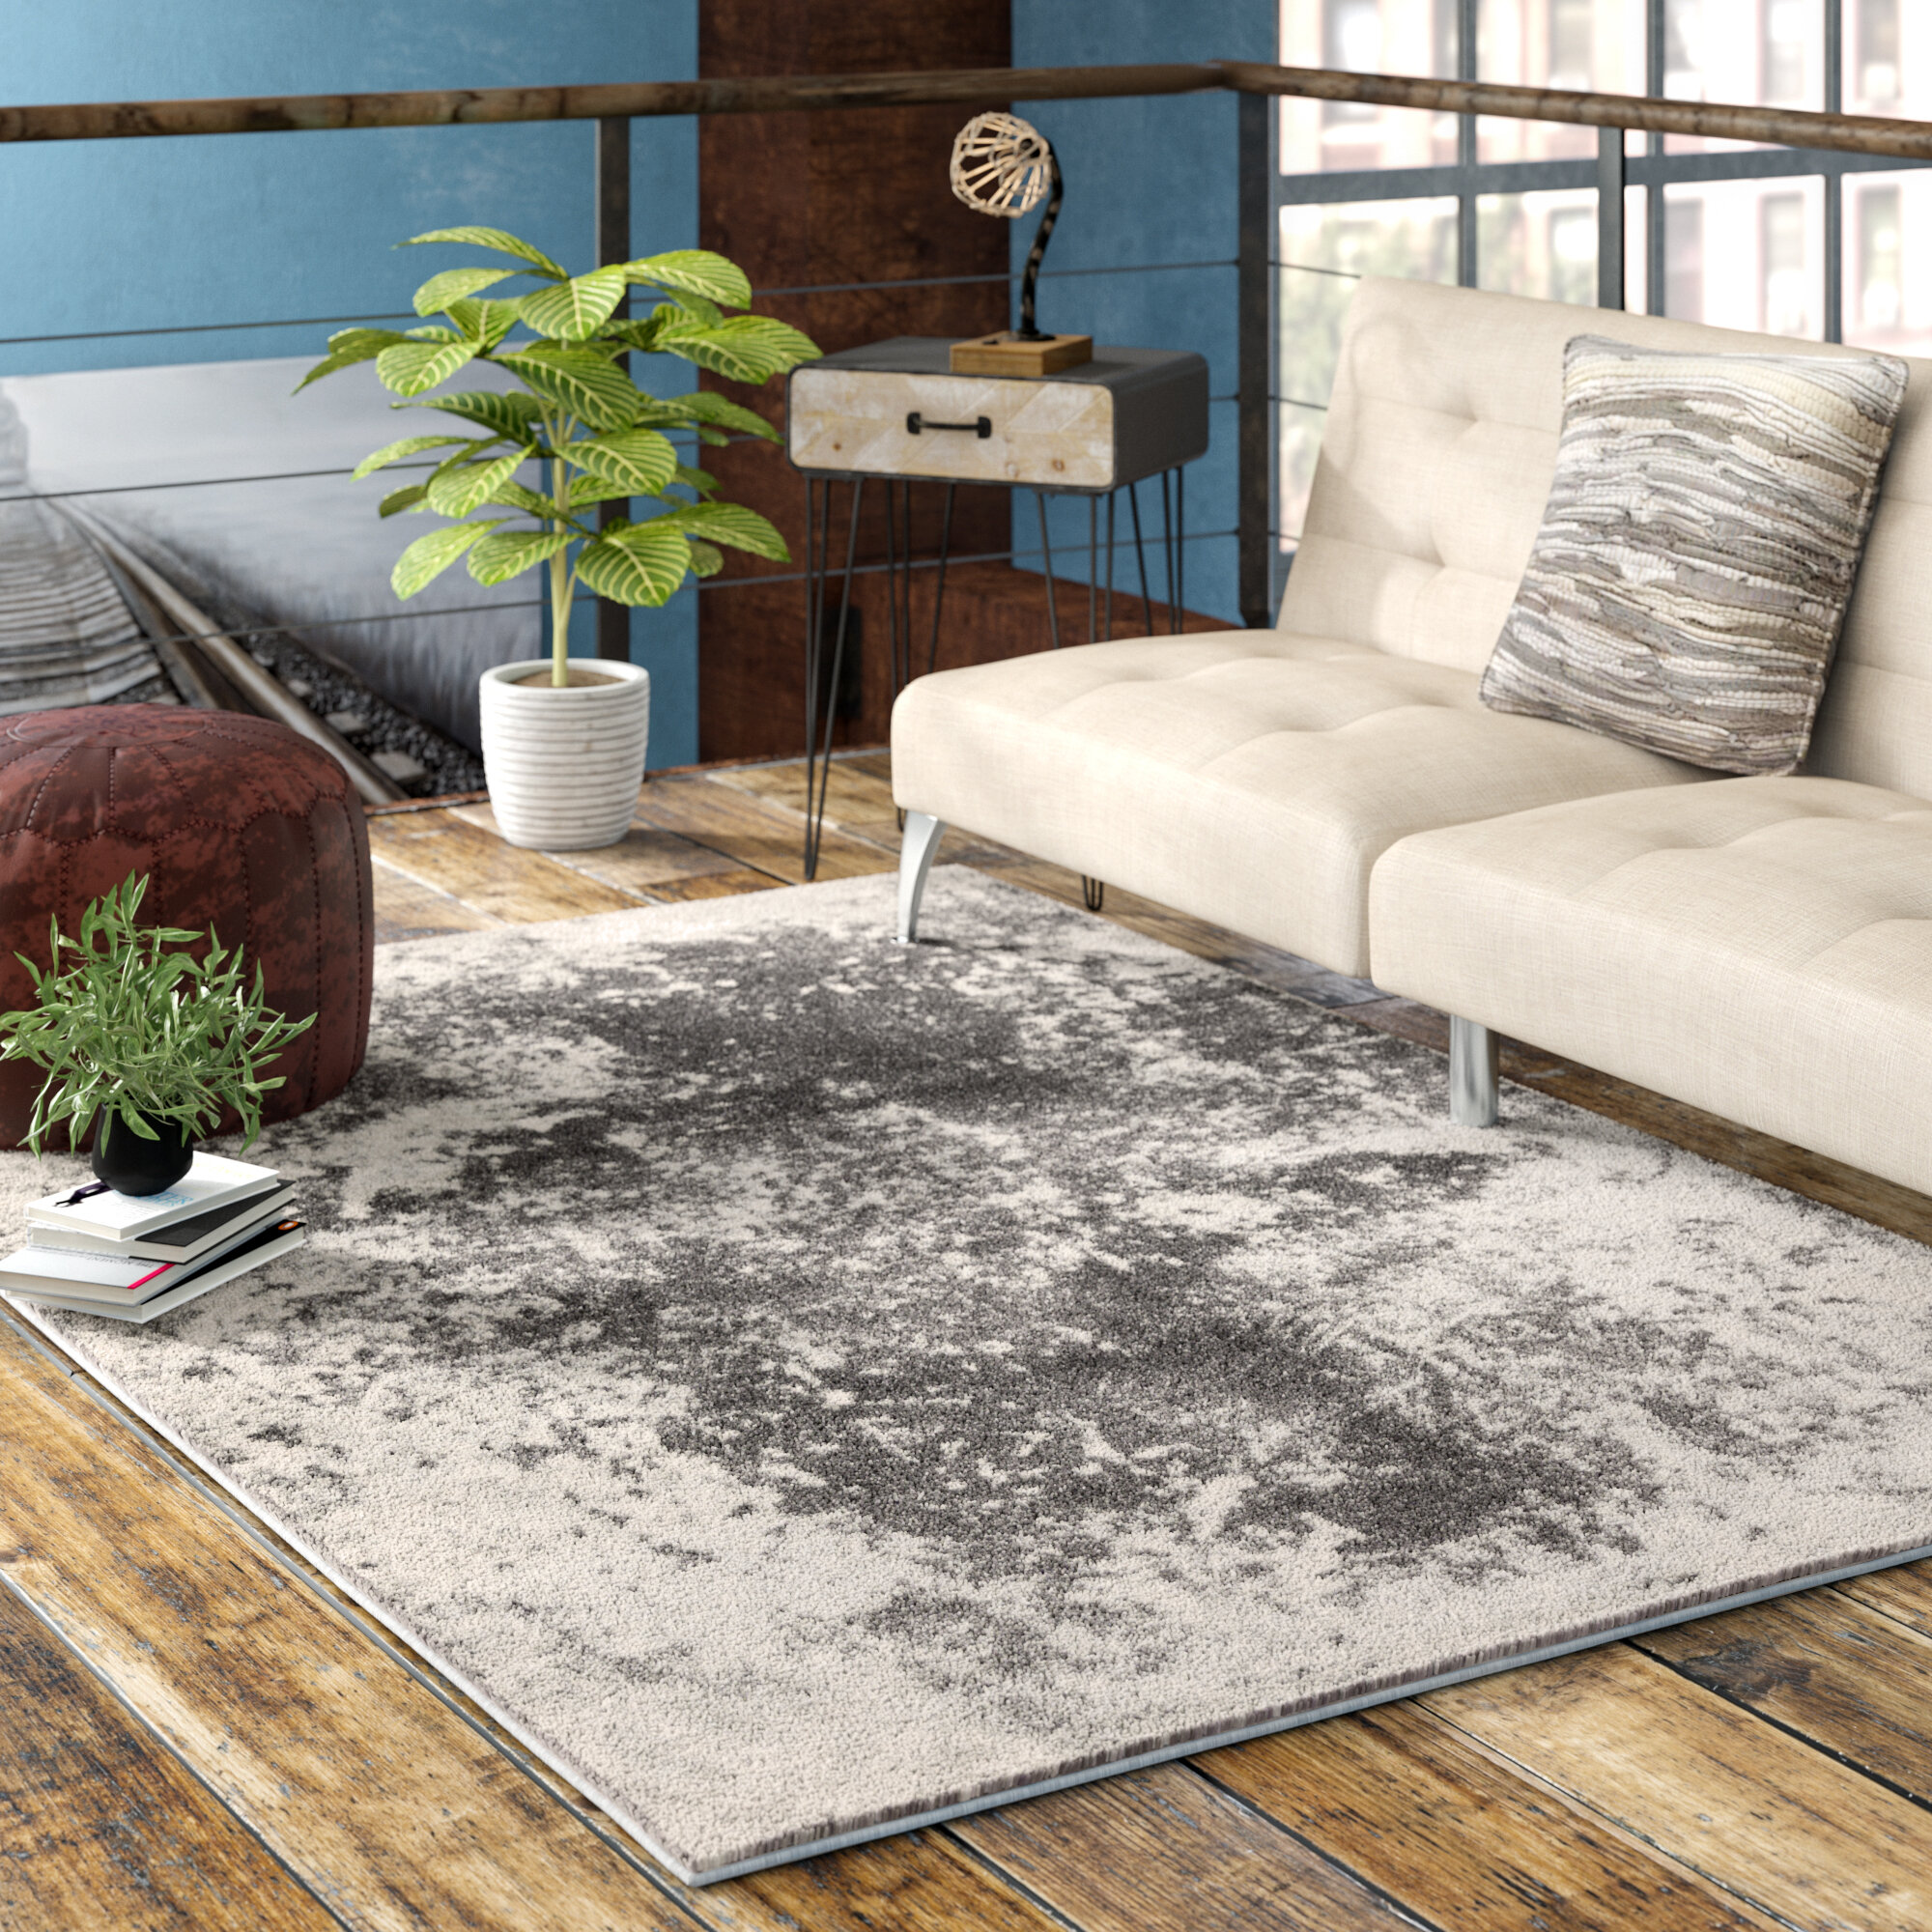 Select Meticulously Living Room Rugs Without False Note